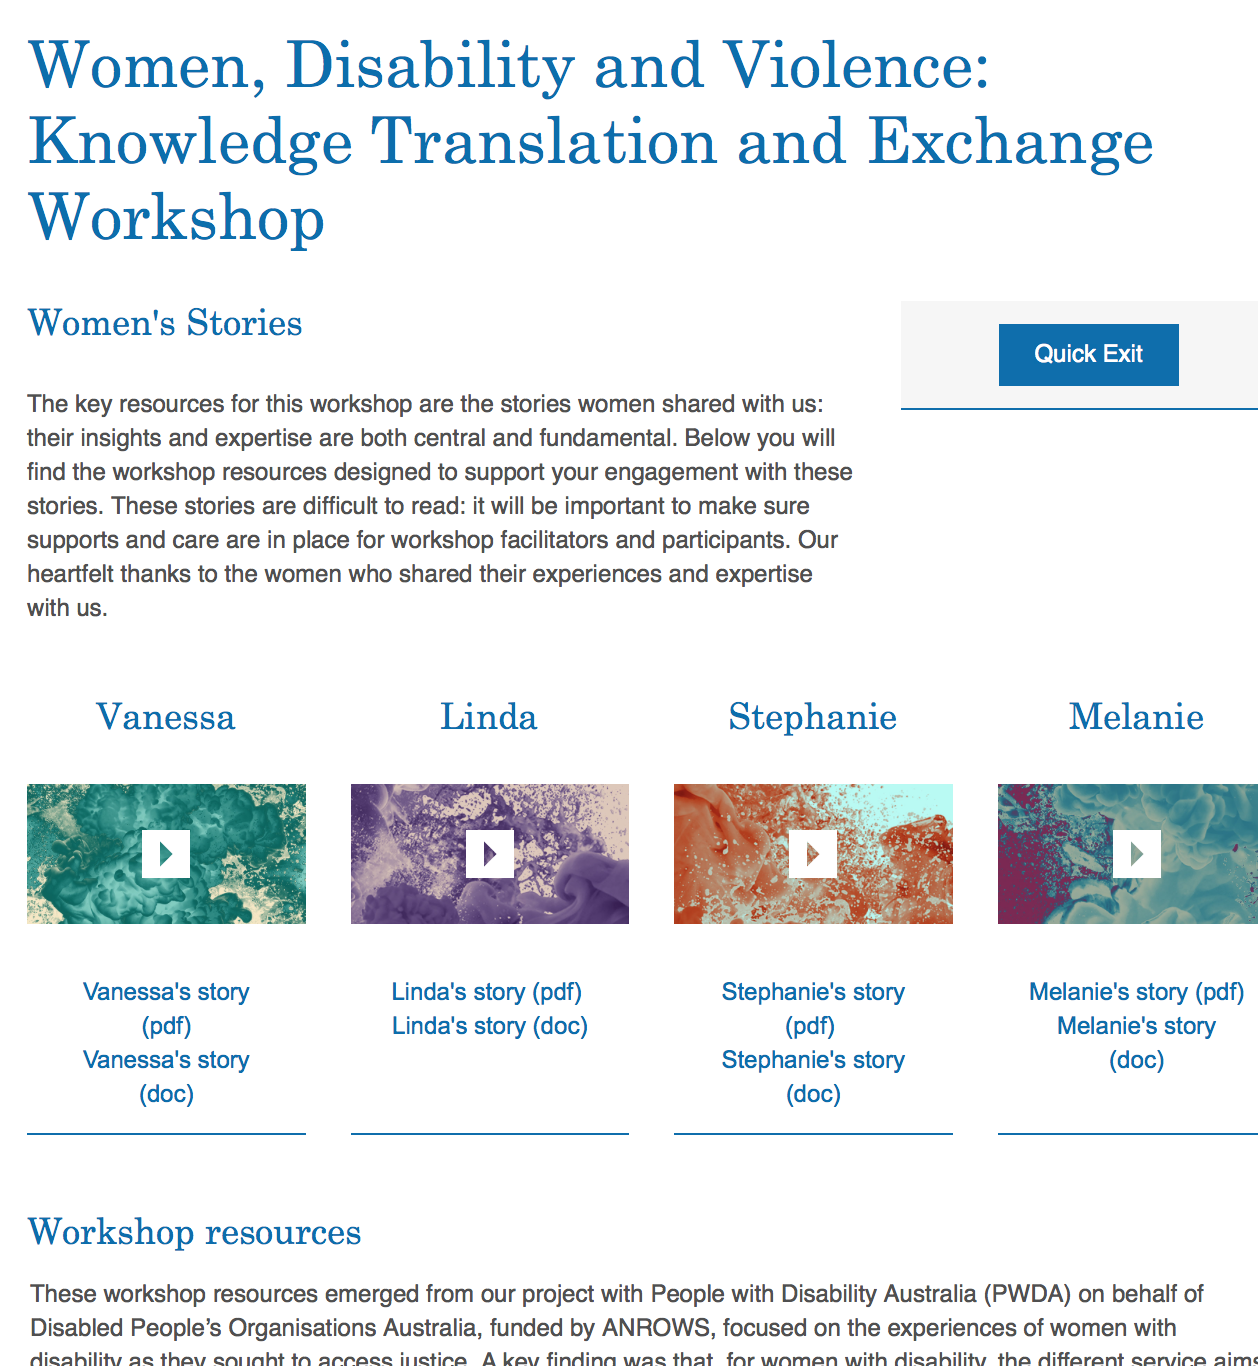 Women, Disability and Violence: Knowledge Translation and Exchange Workshop